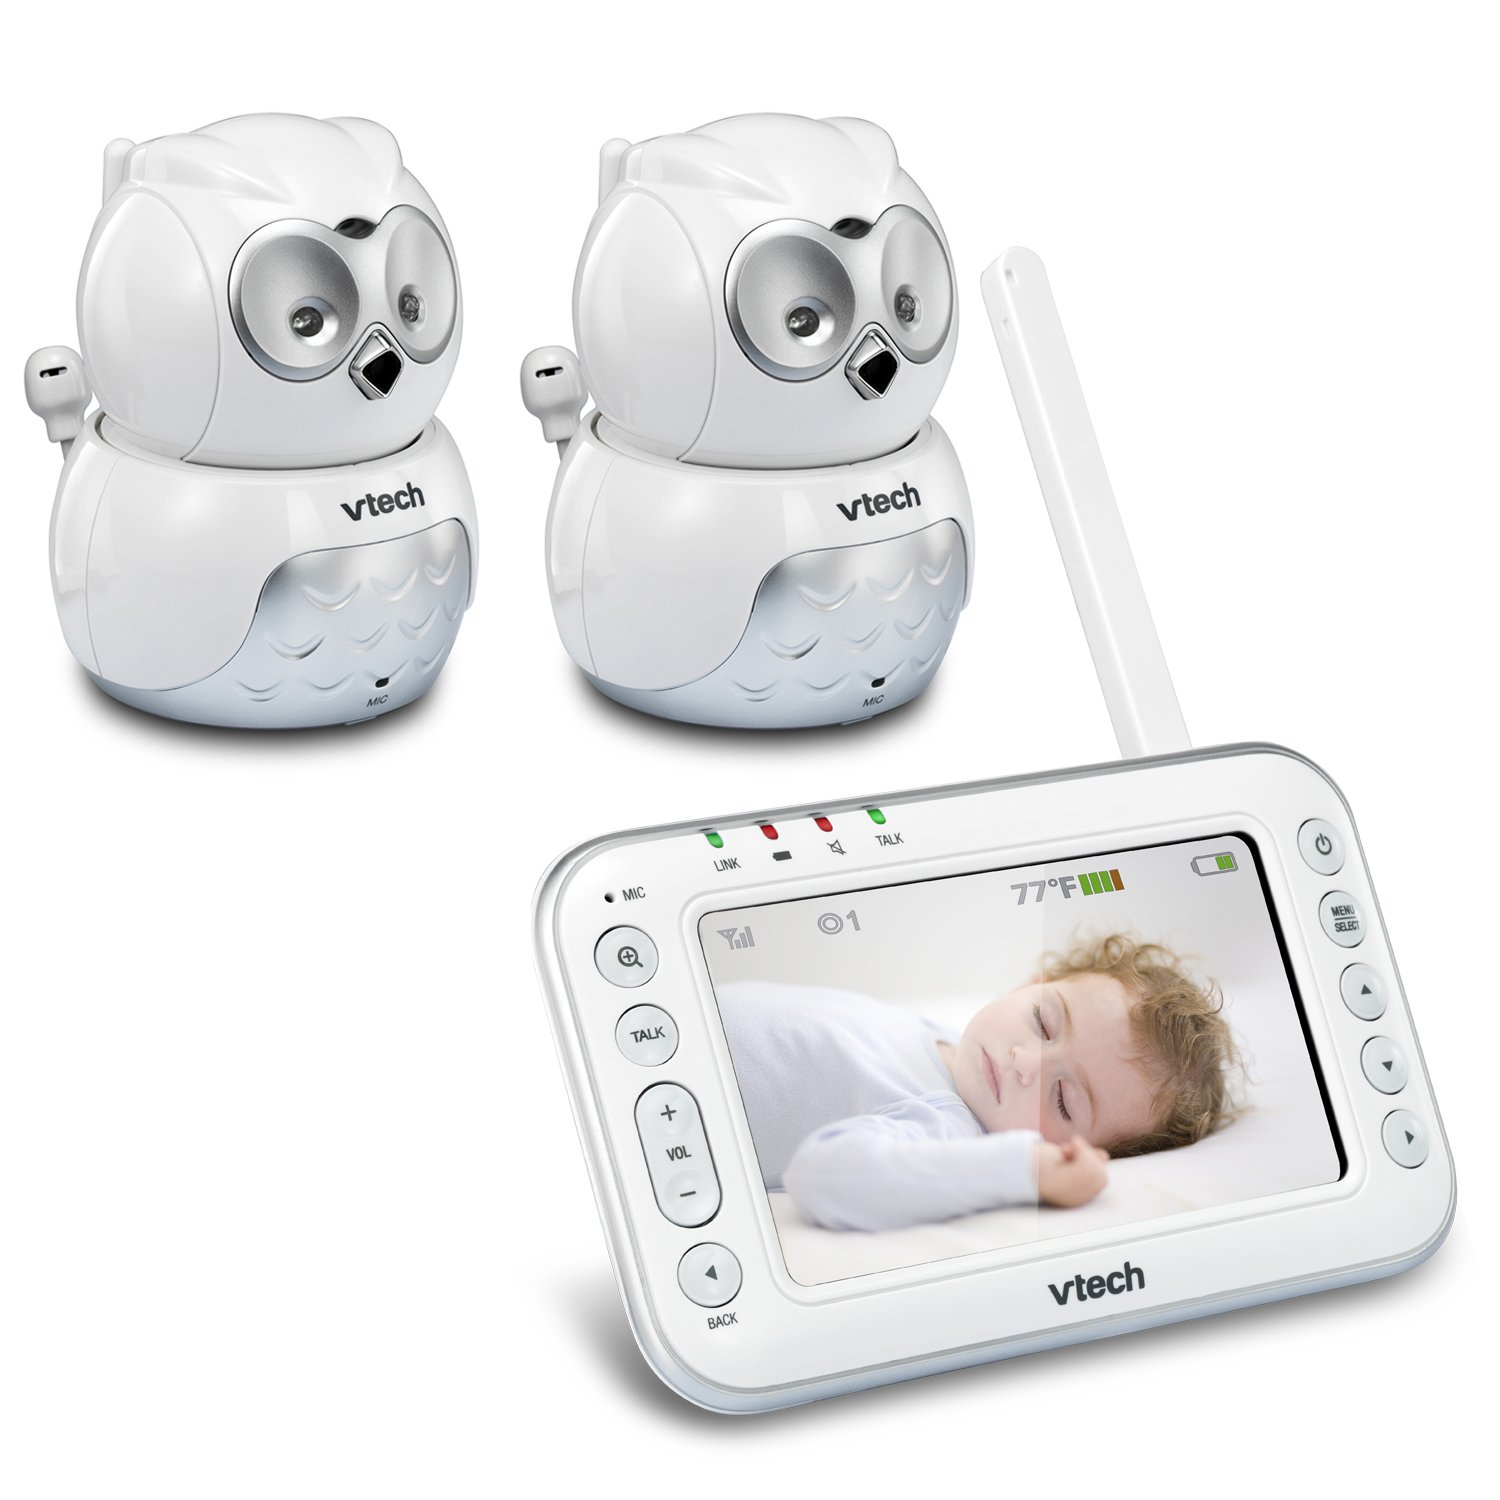 VTech VM344-2 Owl Video Baby Monitor with Automatic Infrared Night Vision, Pan/Tilt & Zoom, Temperature Sensor & 1,000 feet of Range with 2 Cameras